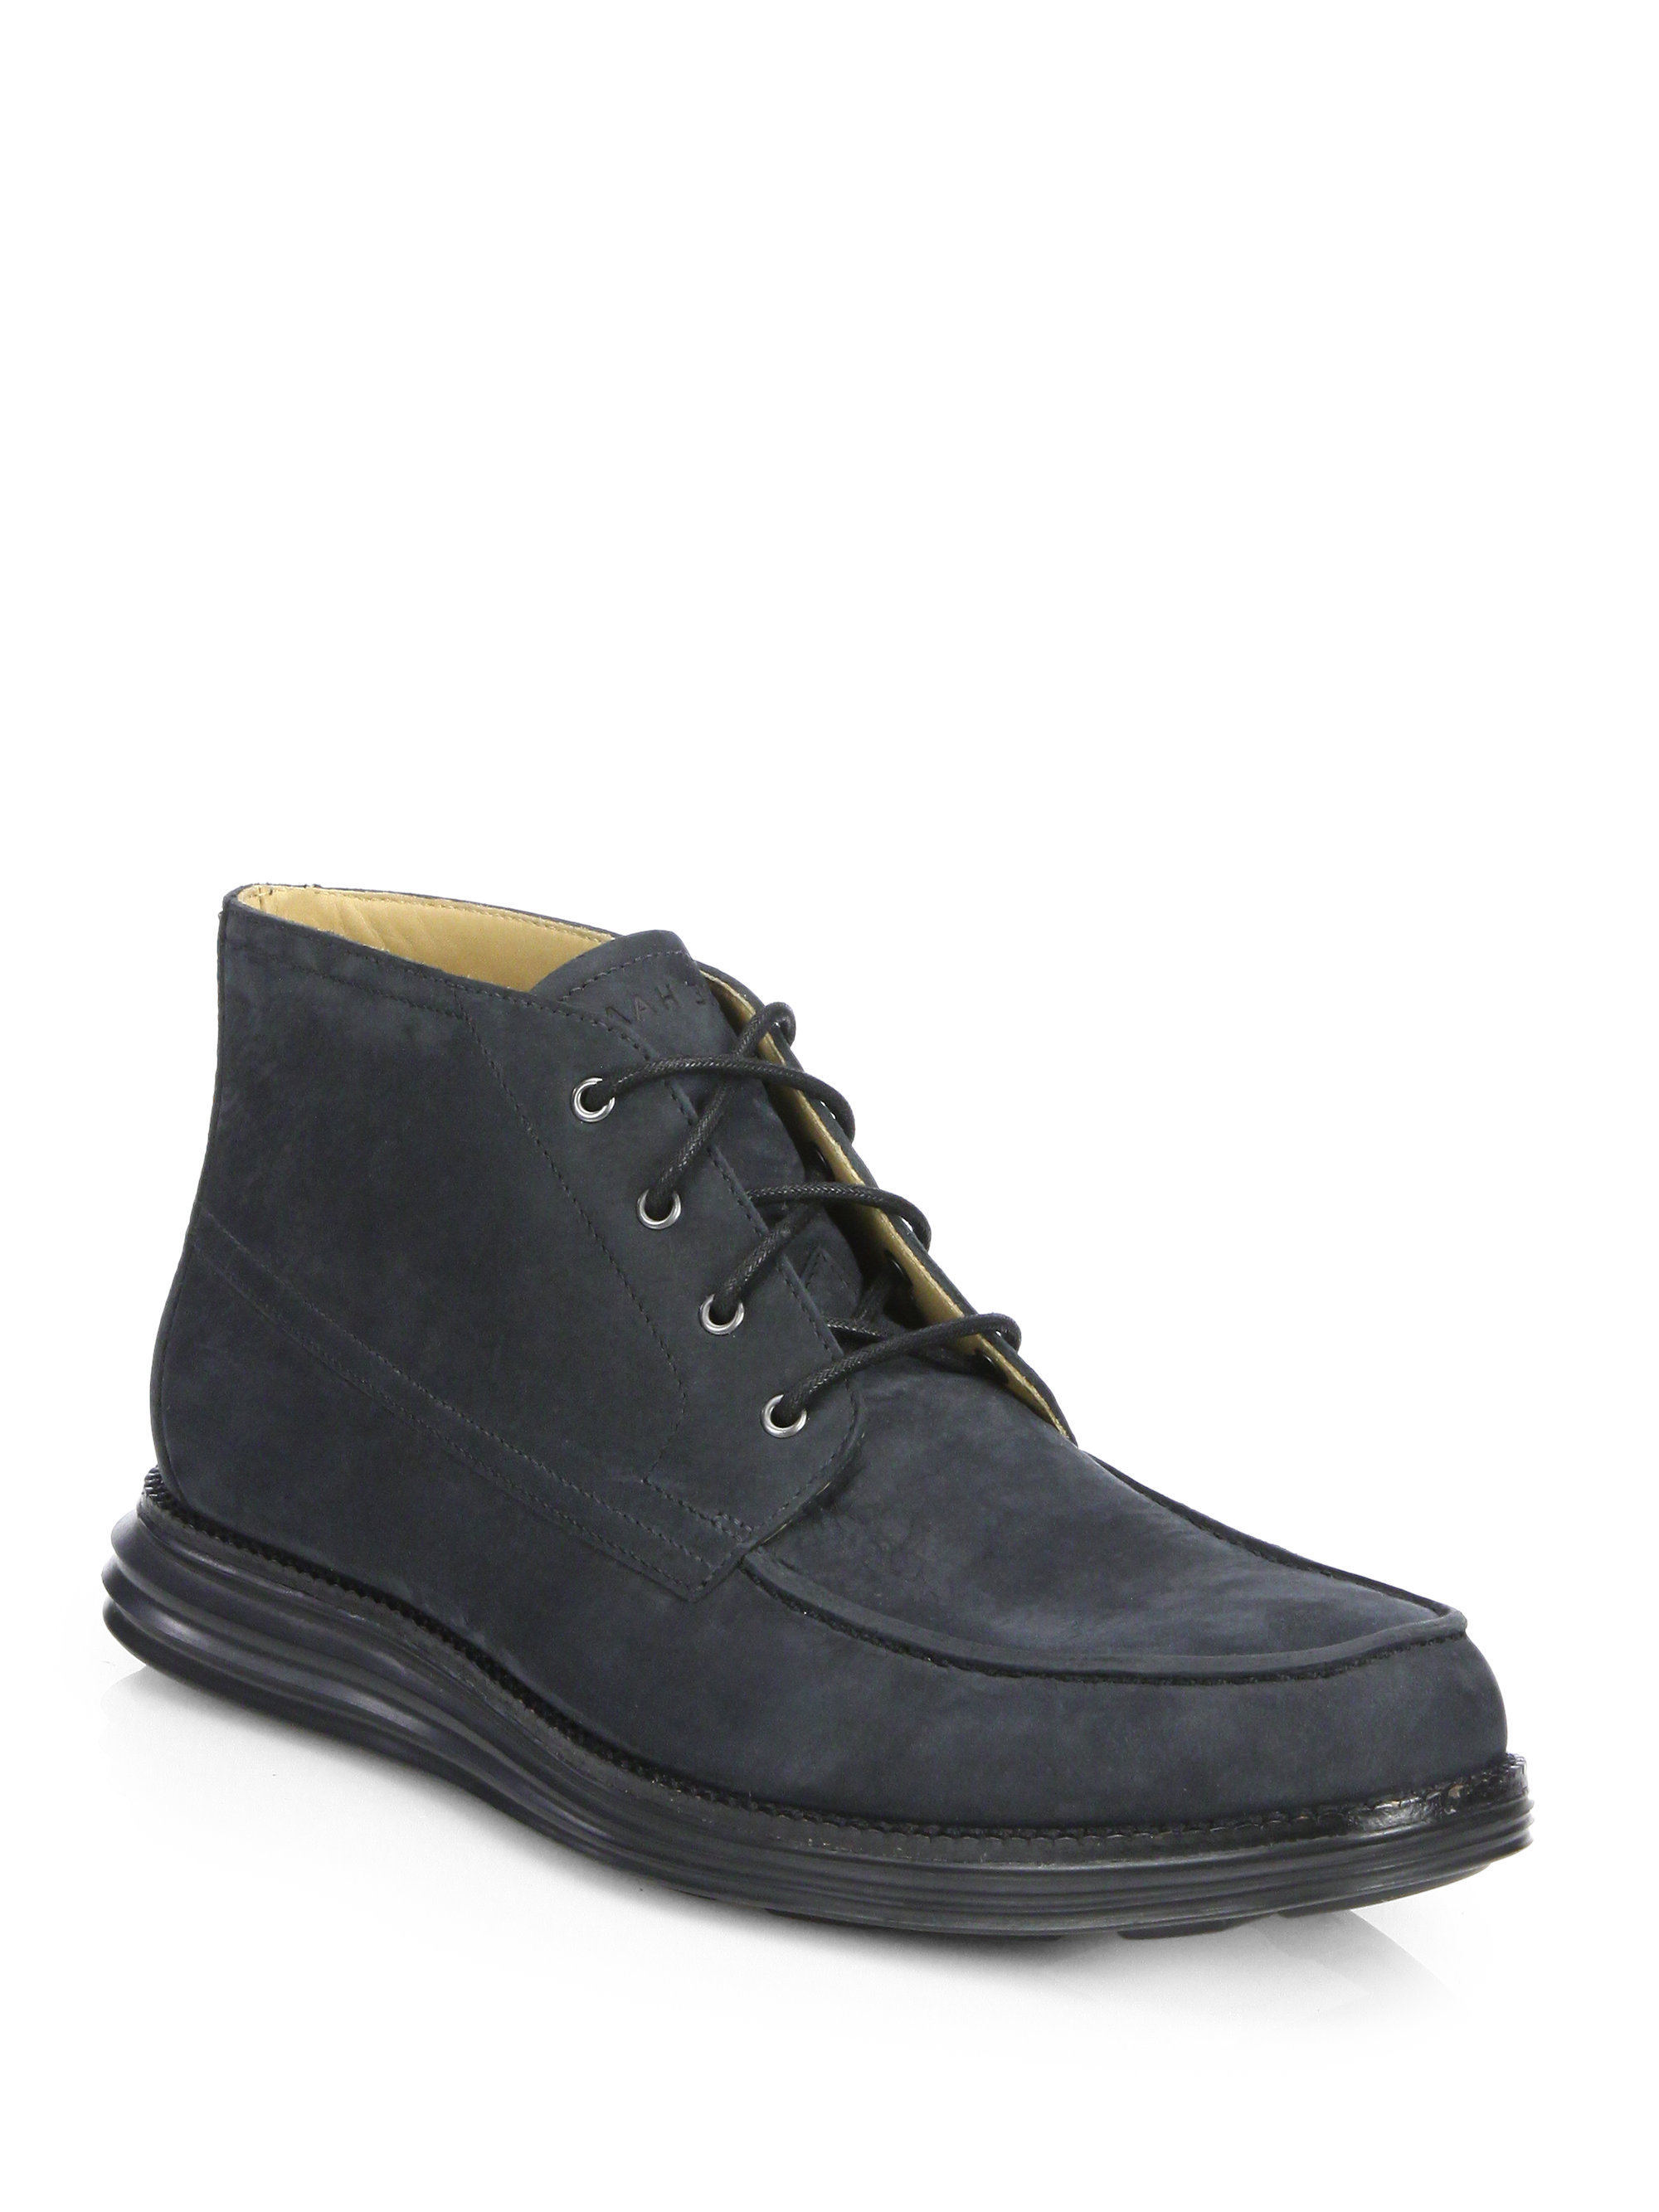 Lyst Cole Haan Lunargrand Moc Chukka Boots In Blue For Men